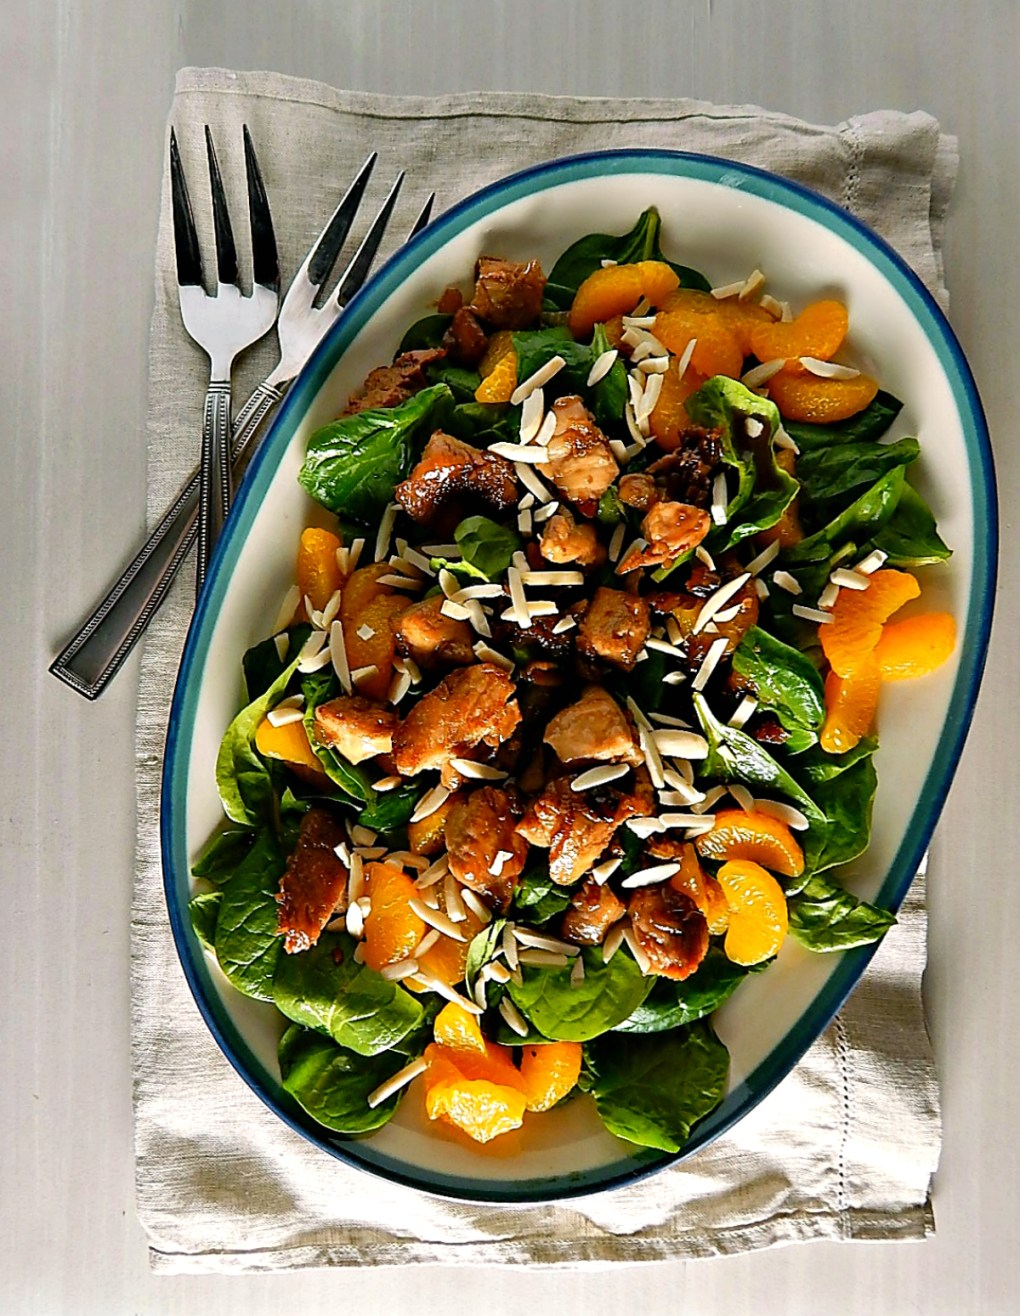 Warm Spinach Chicken Mandarin Salad